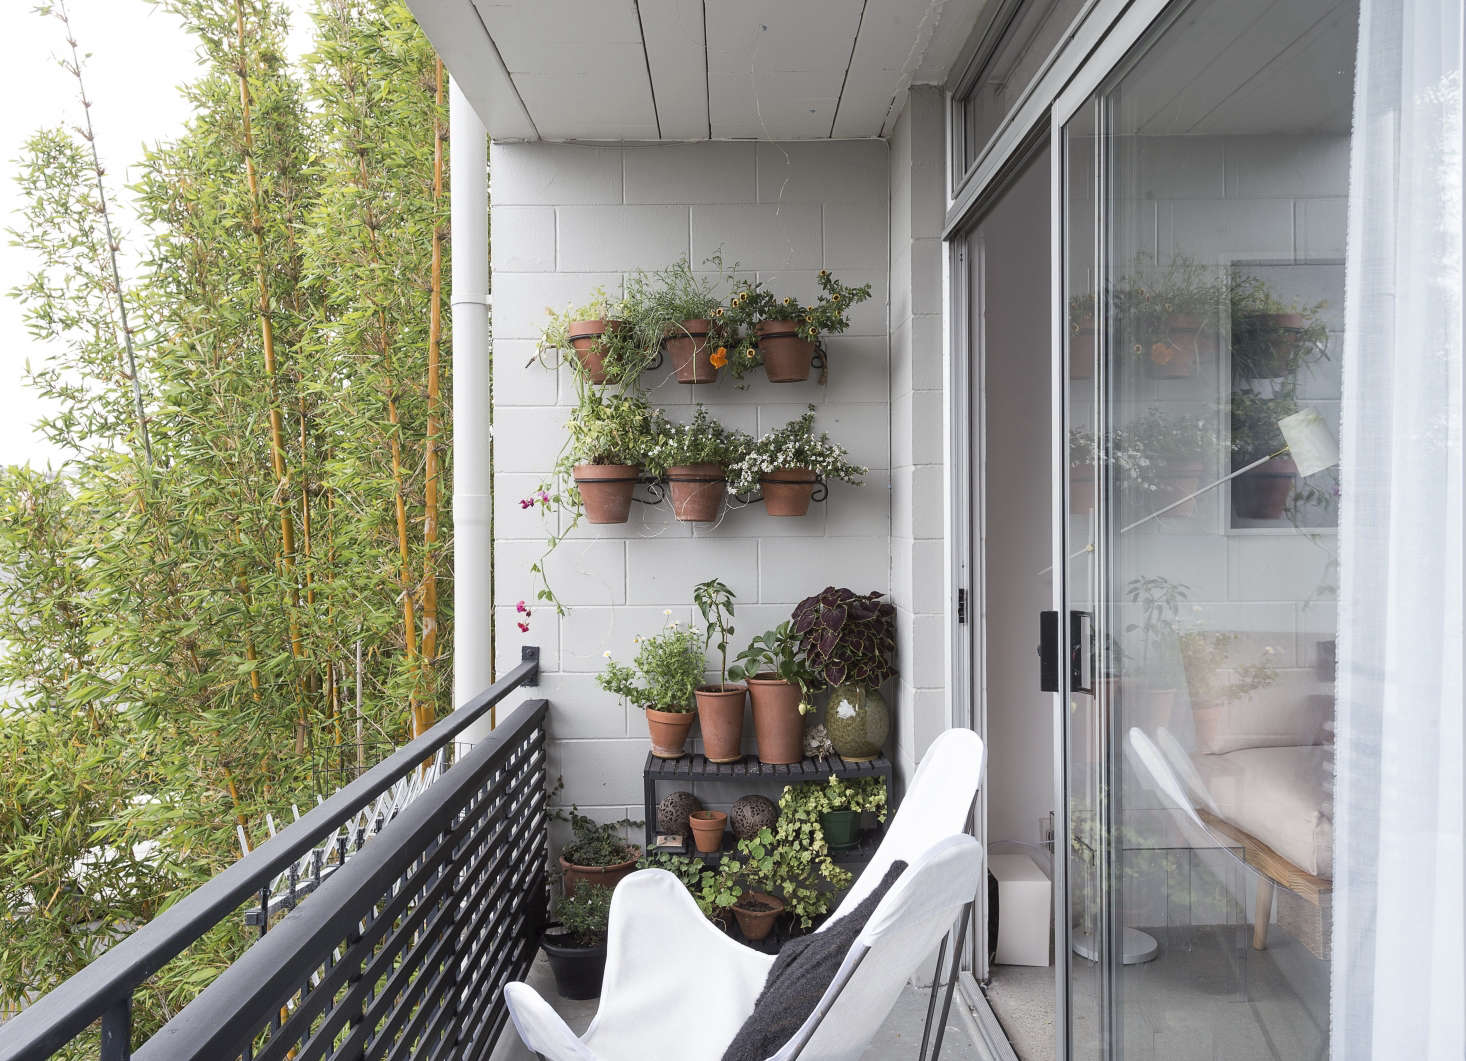 Steal This Look Balcony Garden on a Budget Gardenista